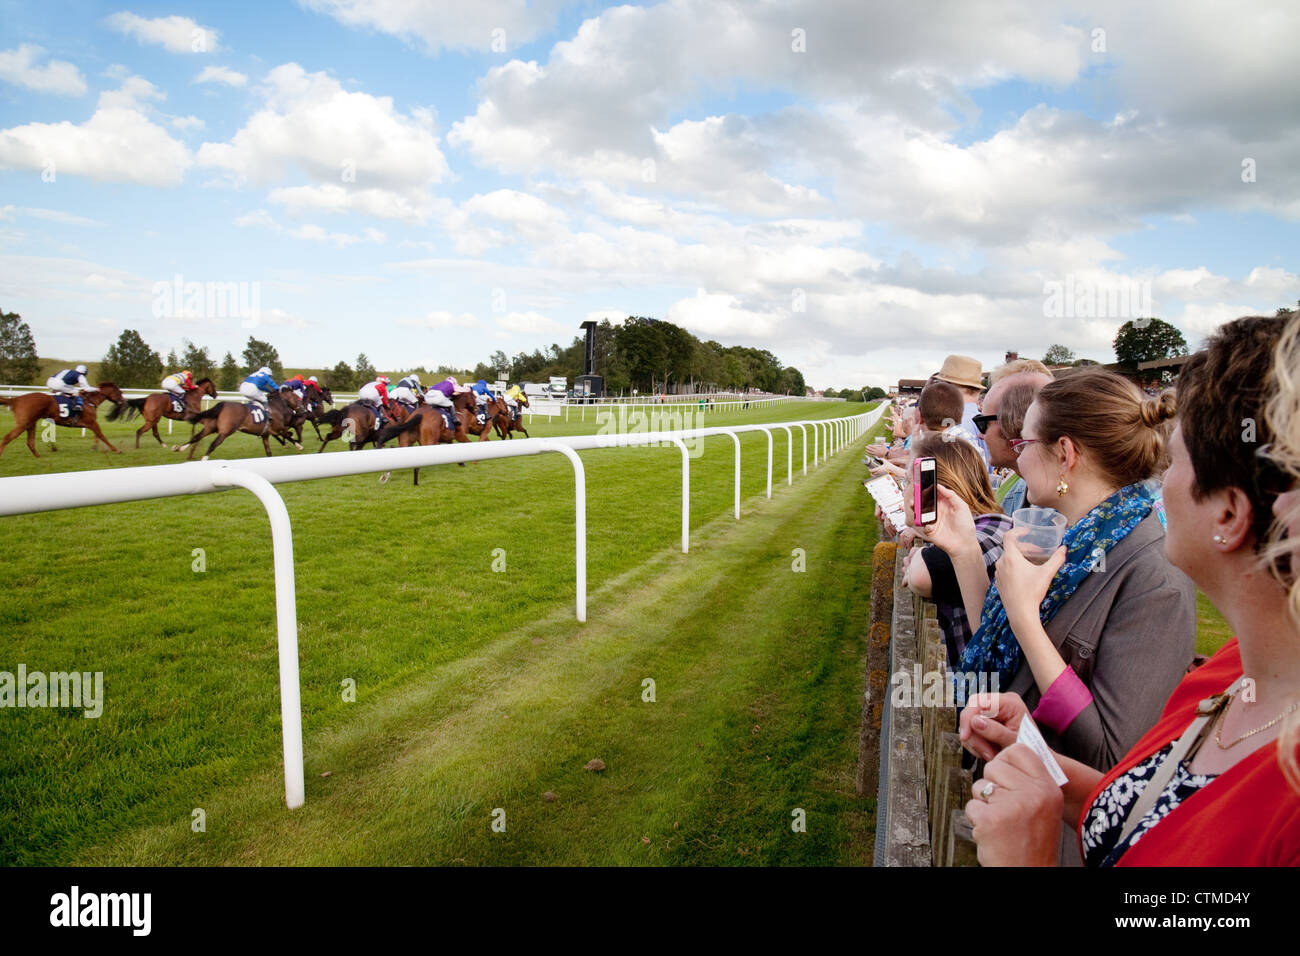 People watching the horse racing, Newmarket July racecourse, Newmarket Suffolk UK - Stock Image